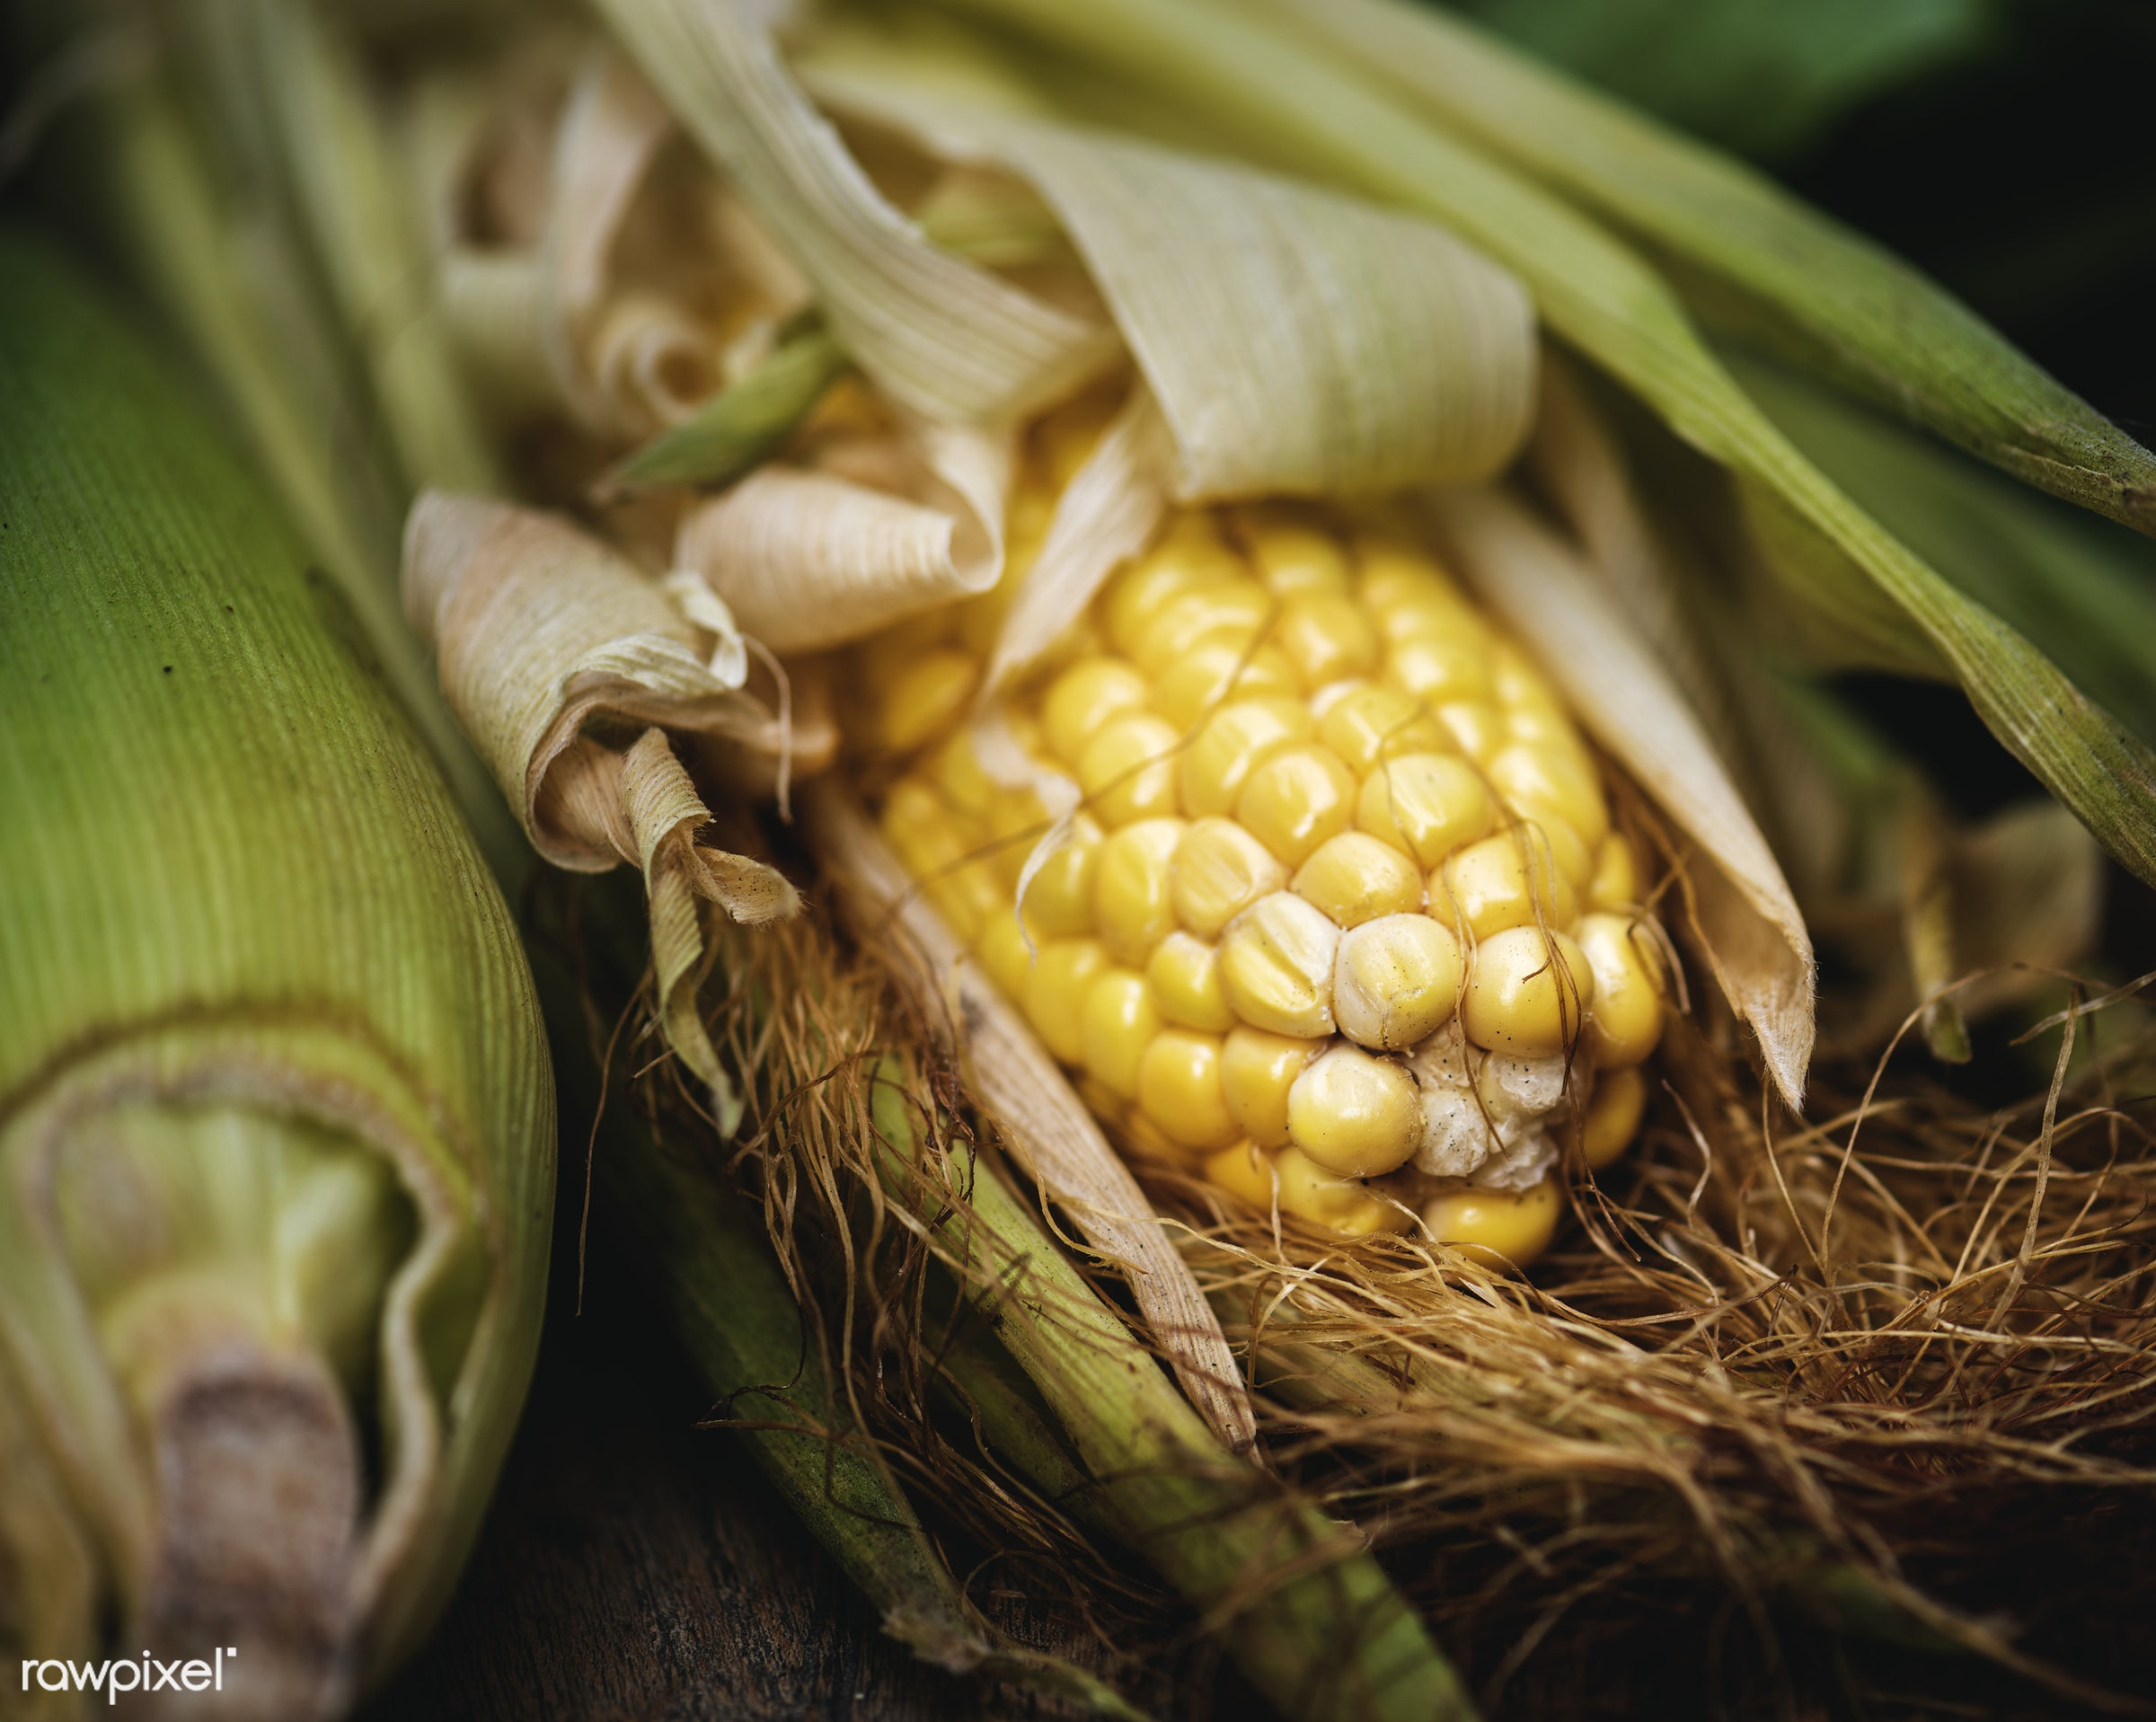 Sweetcorn - raw, plant, nobody, maize, corn, crop, farm, ingredients, sweetcorn, nature, fresh, ingredient, husk, products,...